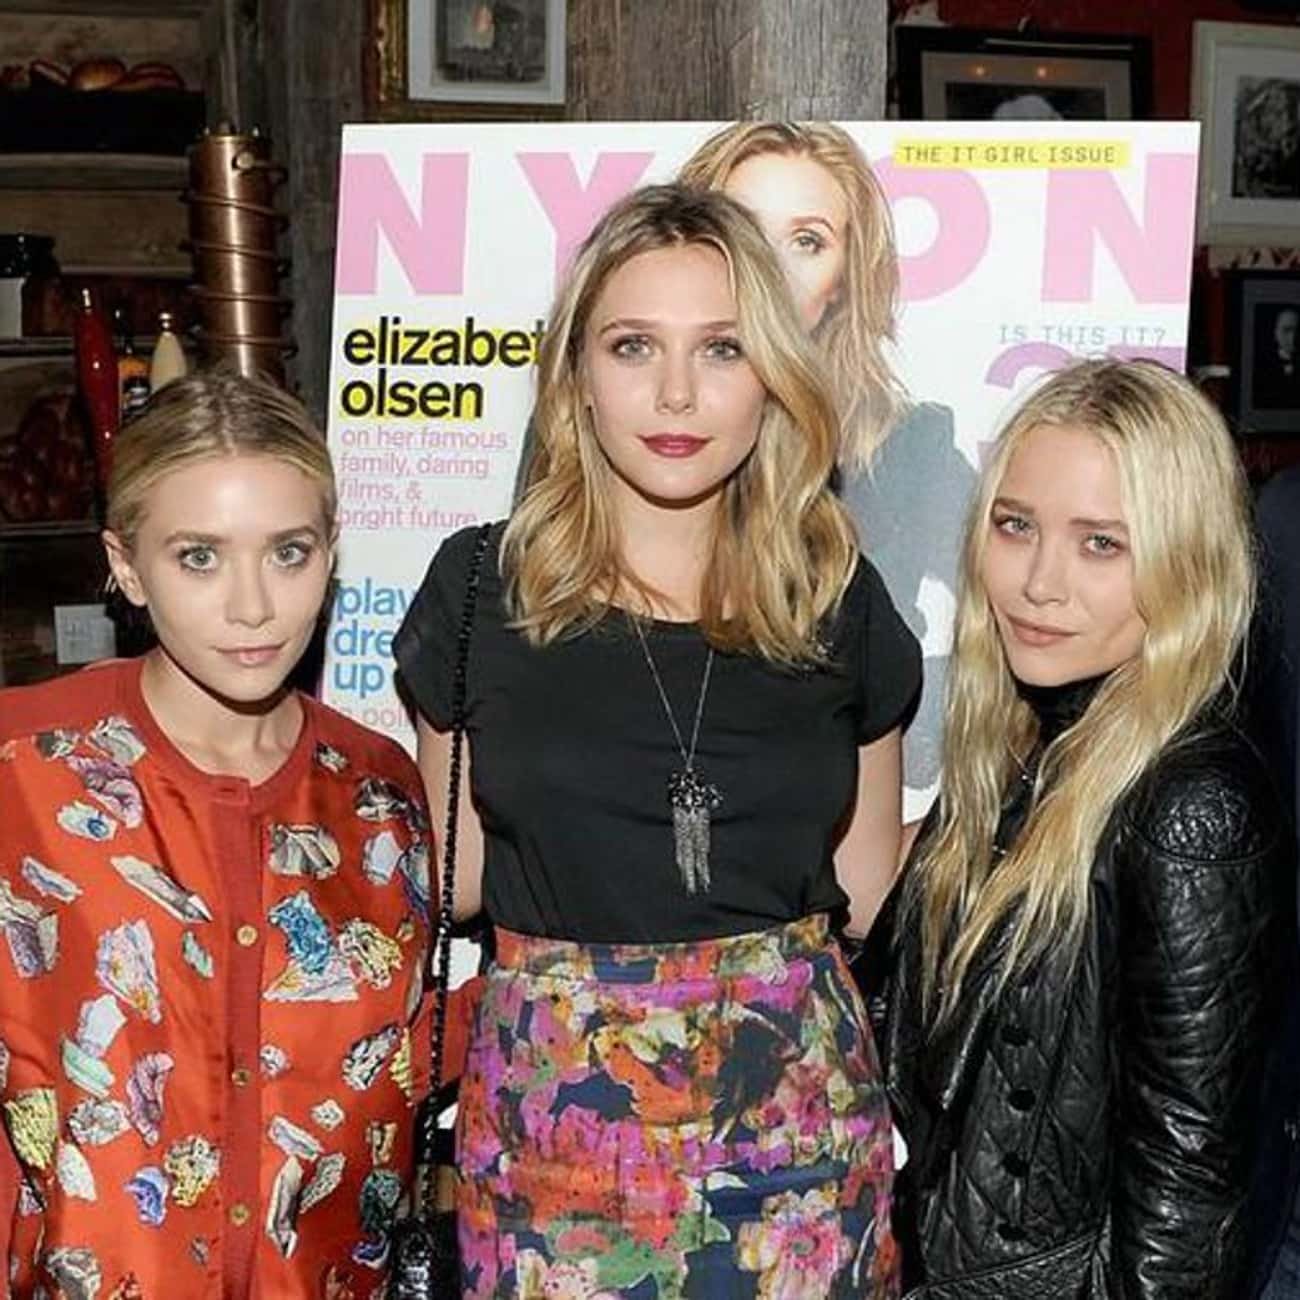 The Olsen Twins And Their Sist is listed (or ranked) 1 on the list Celebrities Who Have Even Hotter Siblings